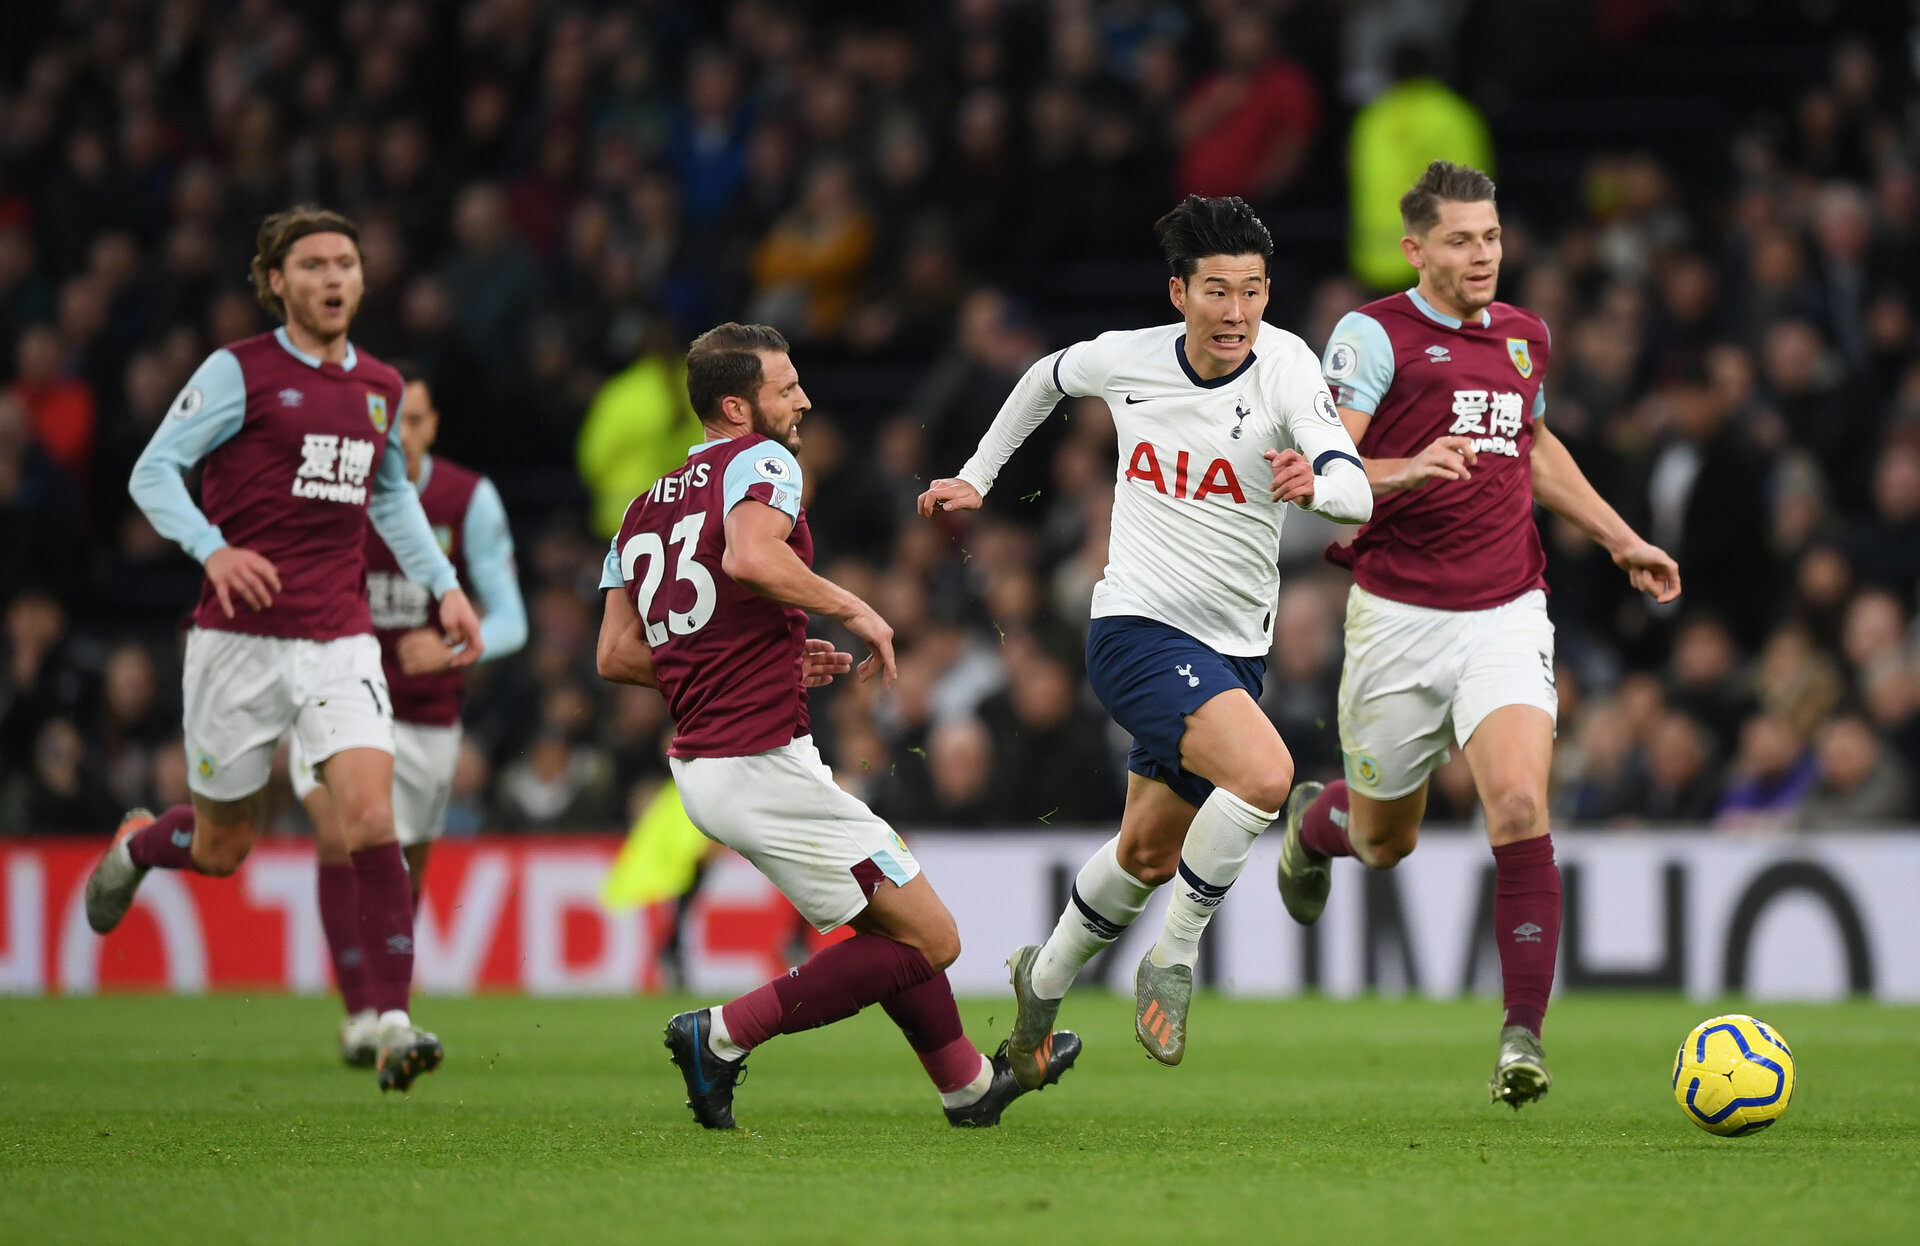 LONDON, ENGLAND - DECEMBER 07:  Heung-Min Son of Tottenham Hotspur breaks past Erik Pieters of Burnley to go on and score his team's third goal during the Premier League match between Tottenham Hotspur and Burnley FC at Tottenham Hotspur Stadium on December 07, 2019 in London, United Kingdom. (Photo by Shaun Botterill/Getty Images)